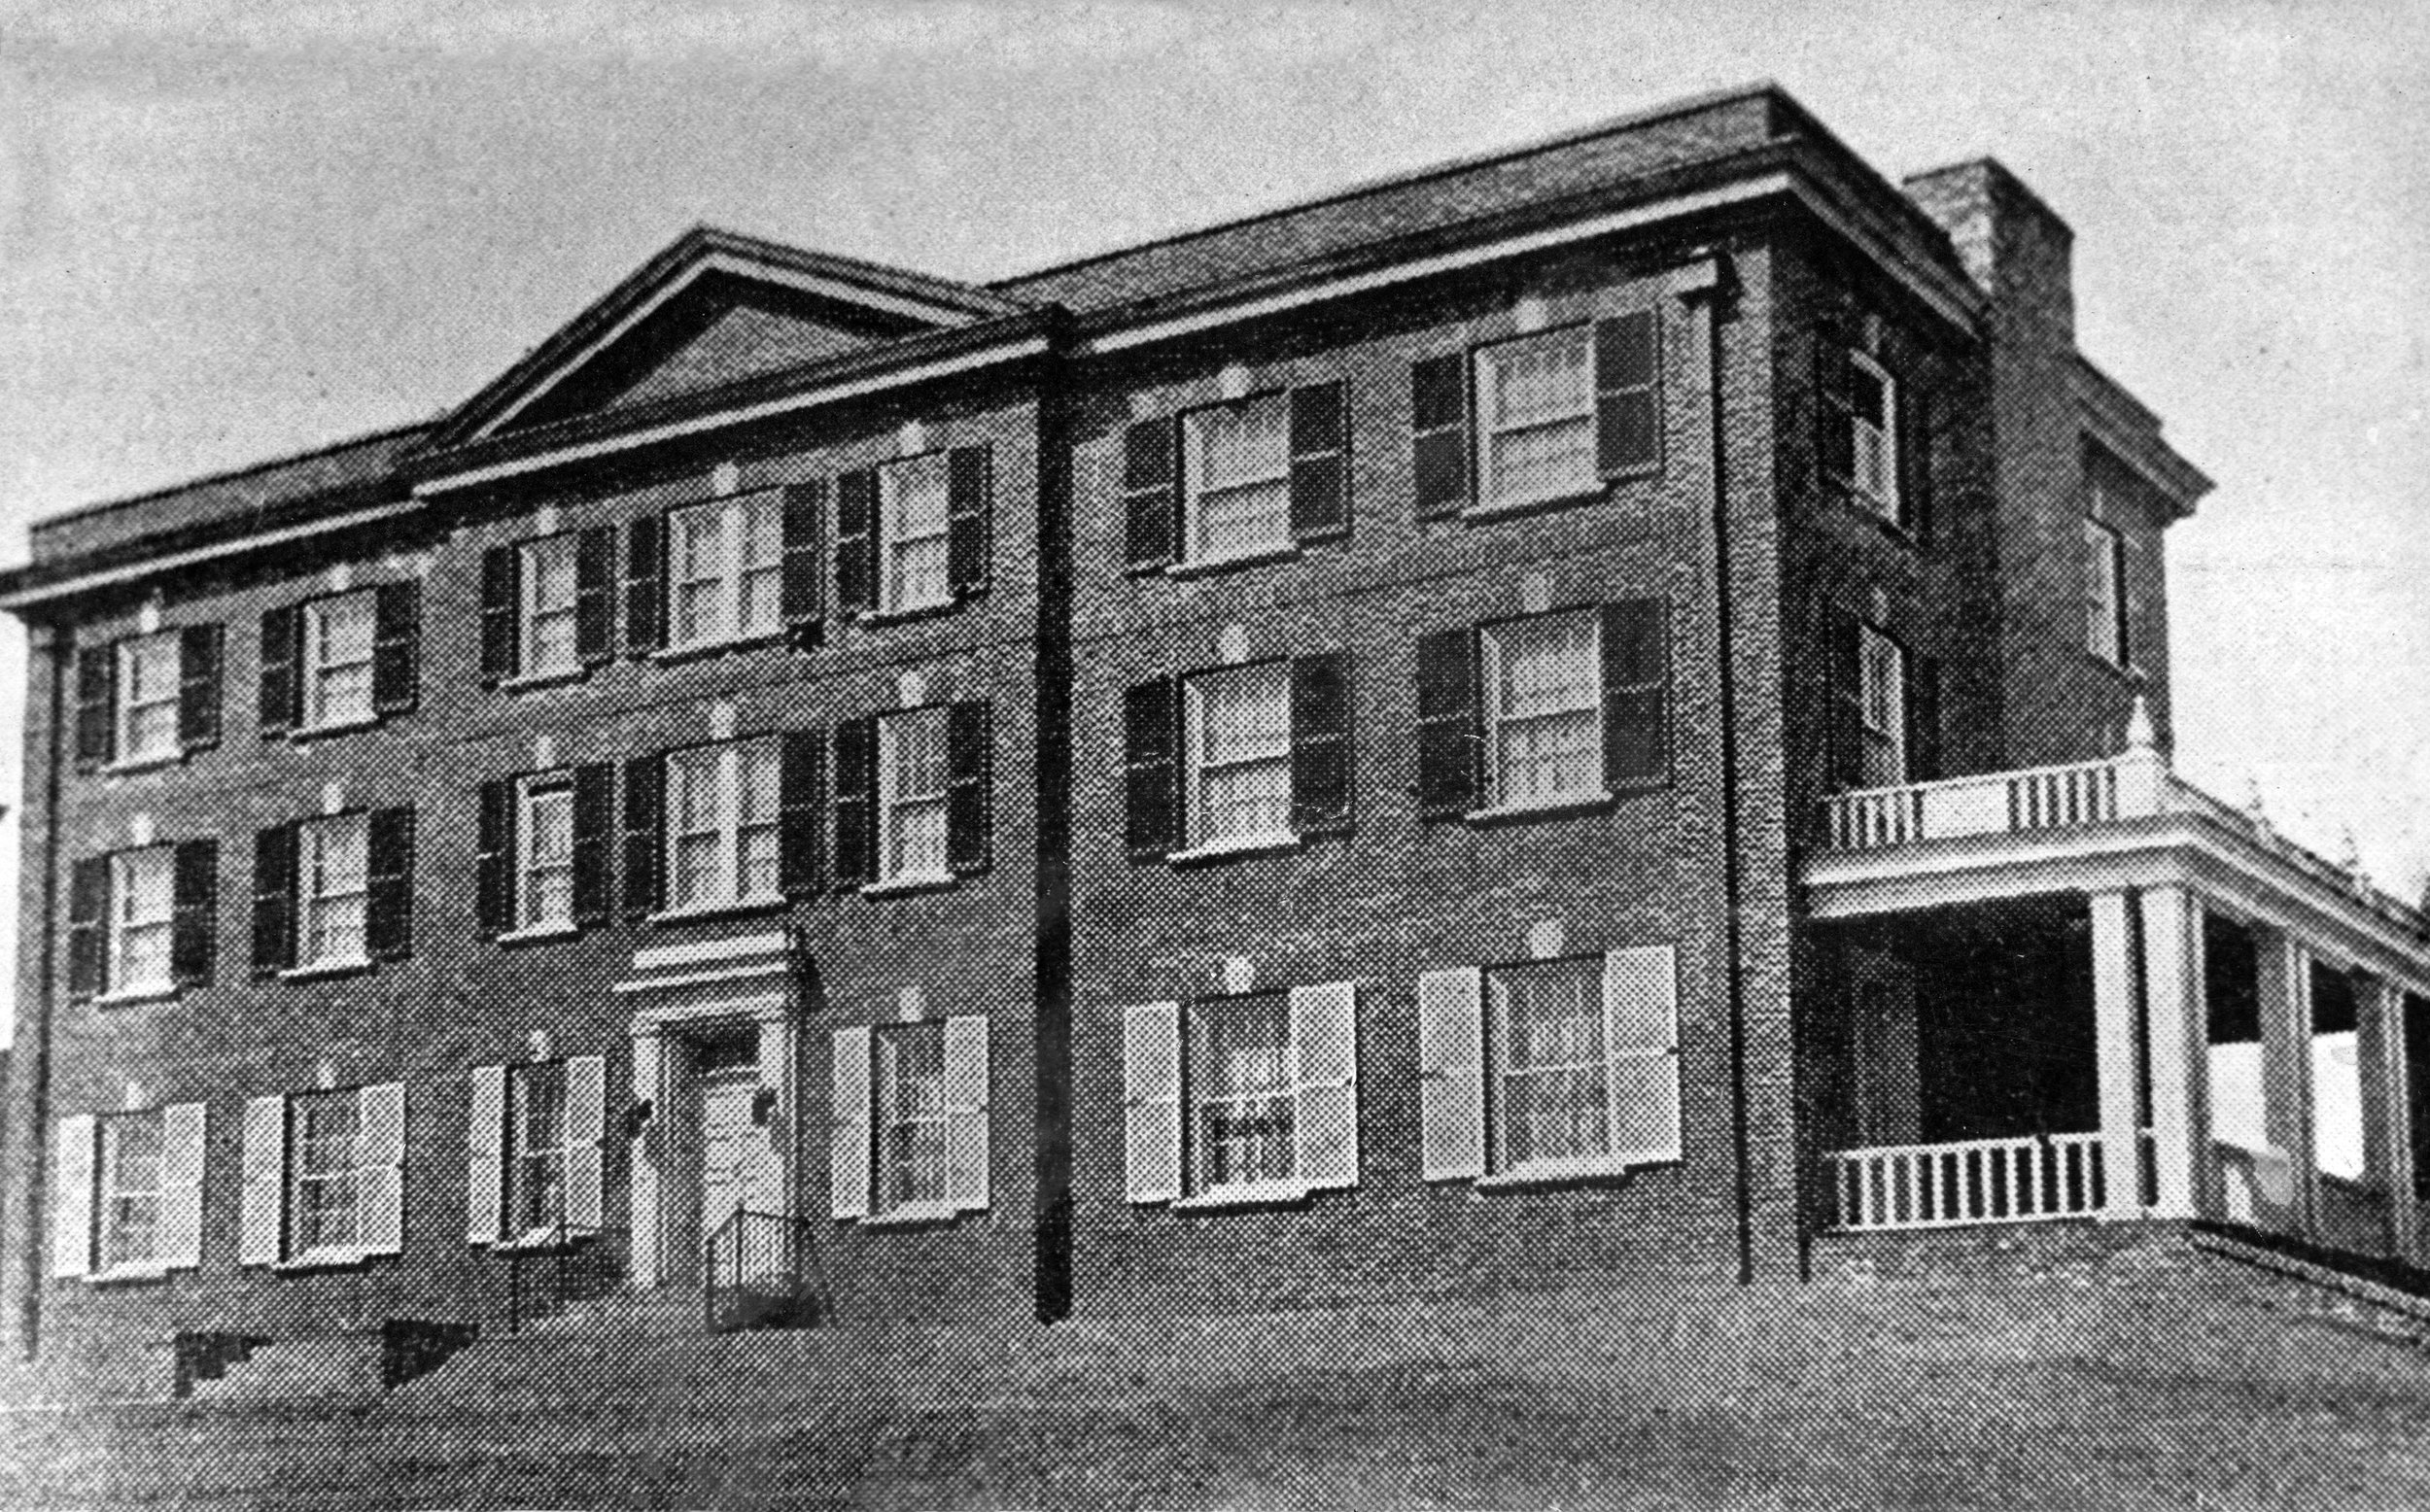 523 South Allen St. - Omega's New Home - as appeared in the March 1933 The Rattle